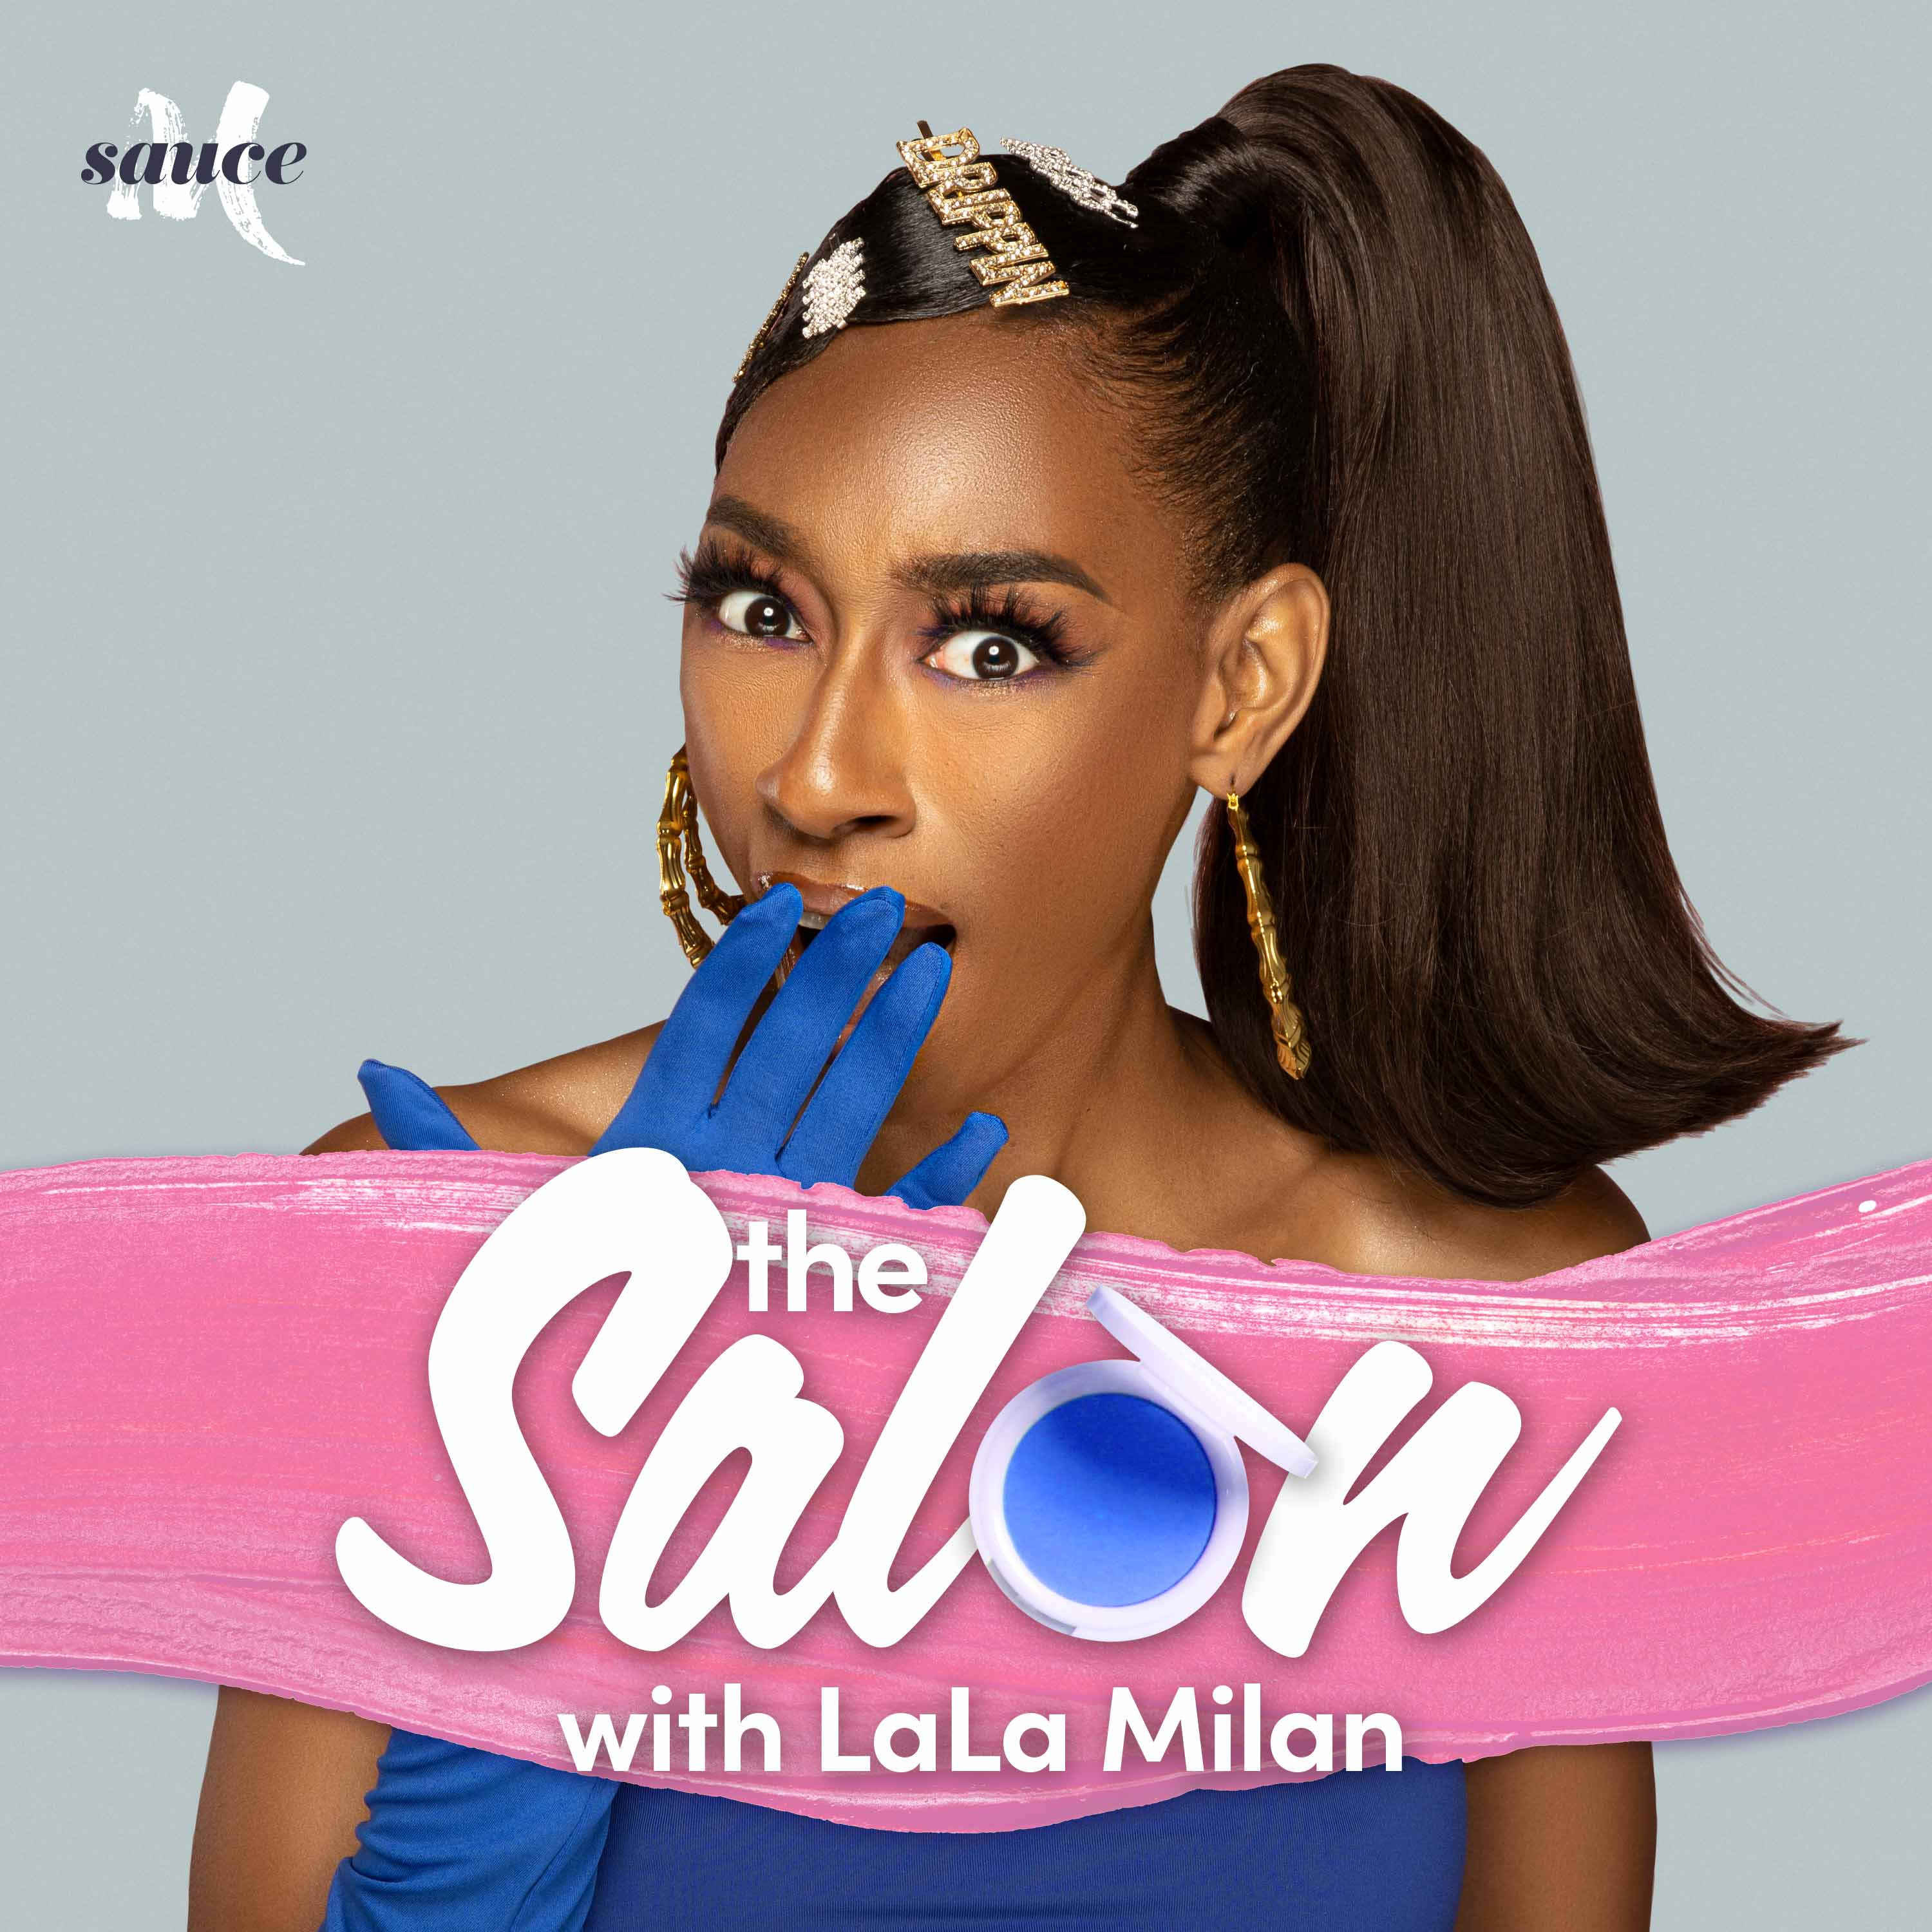 The Salon with Lala Milan